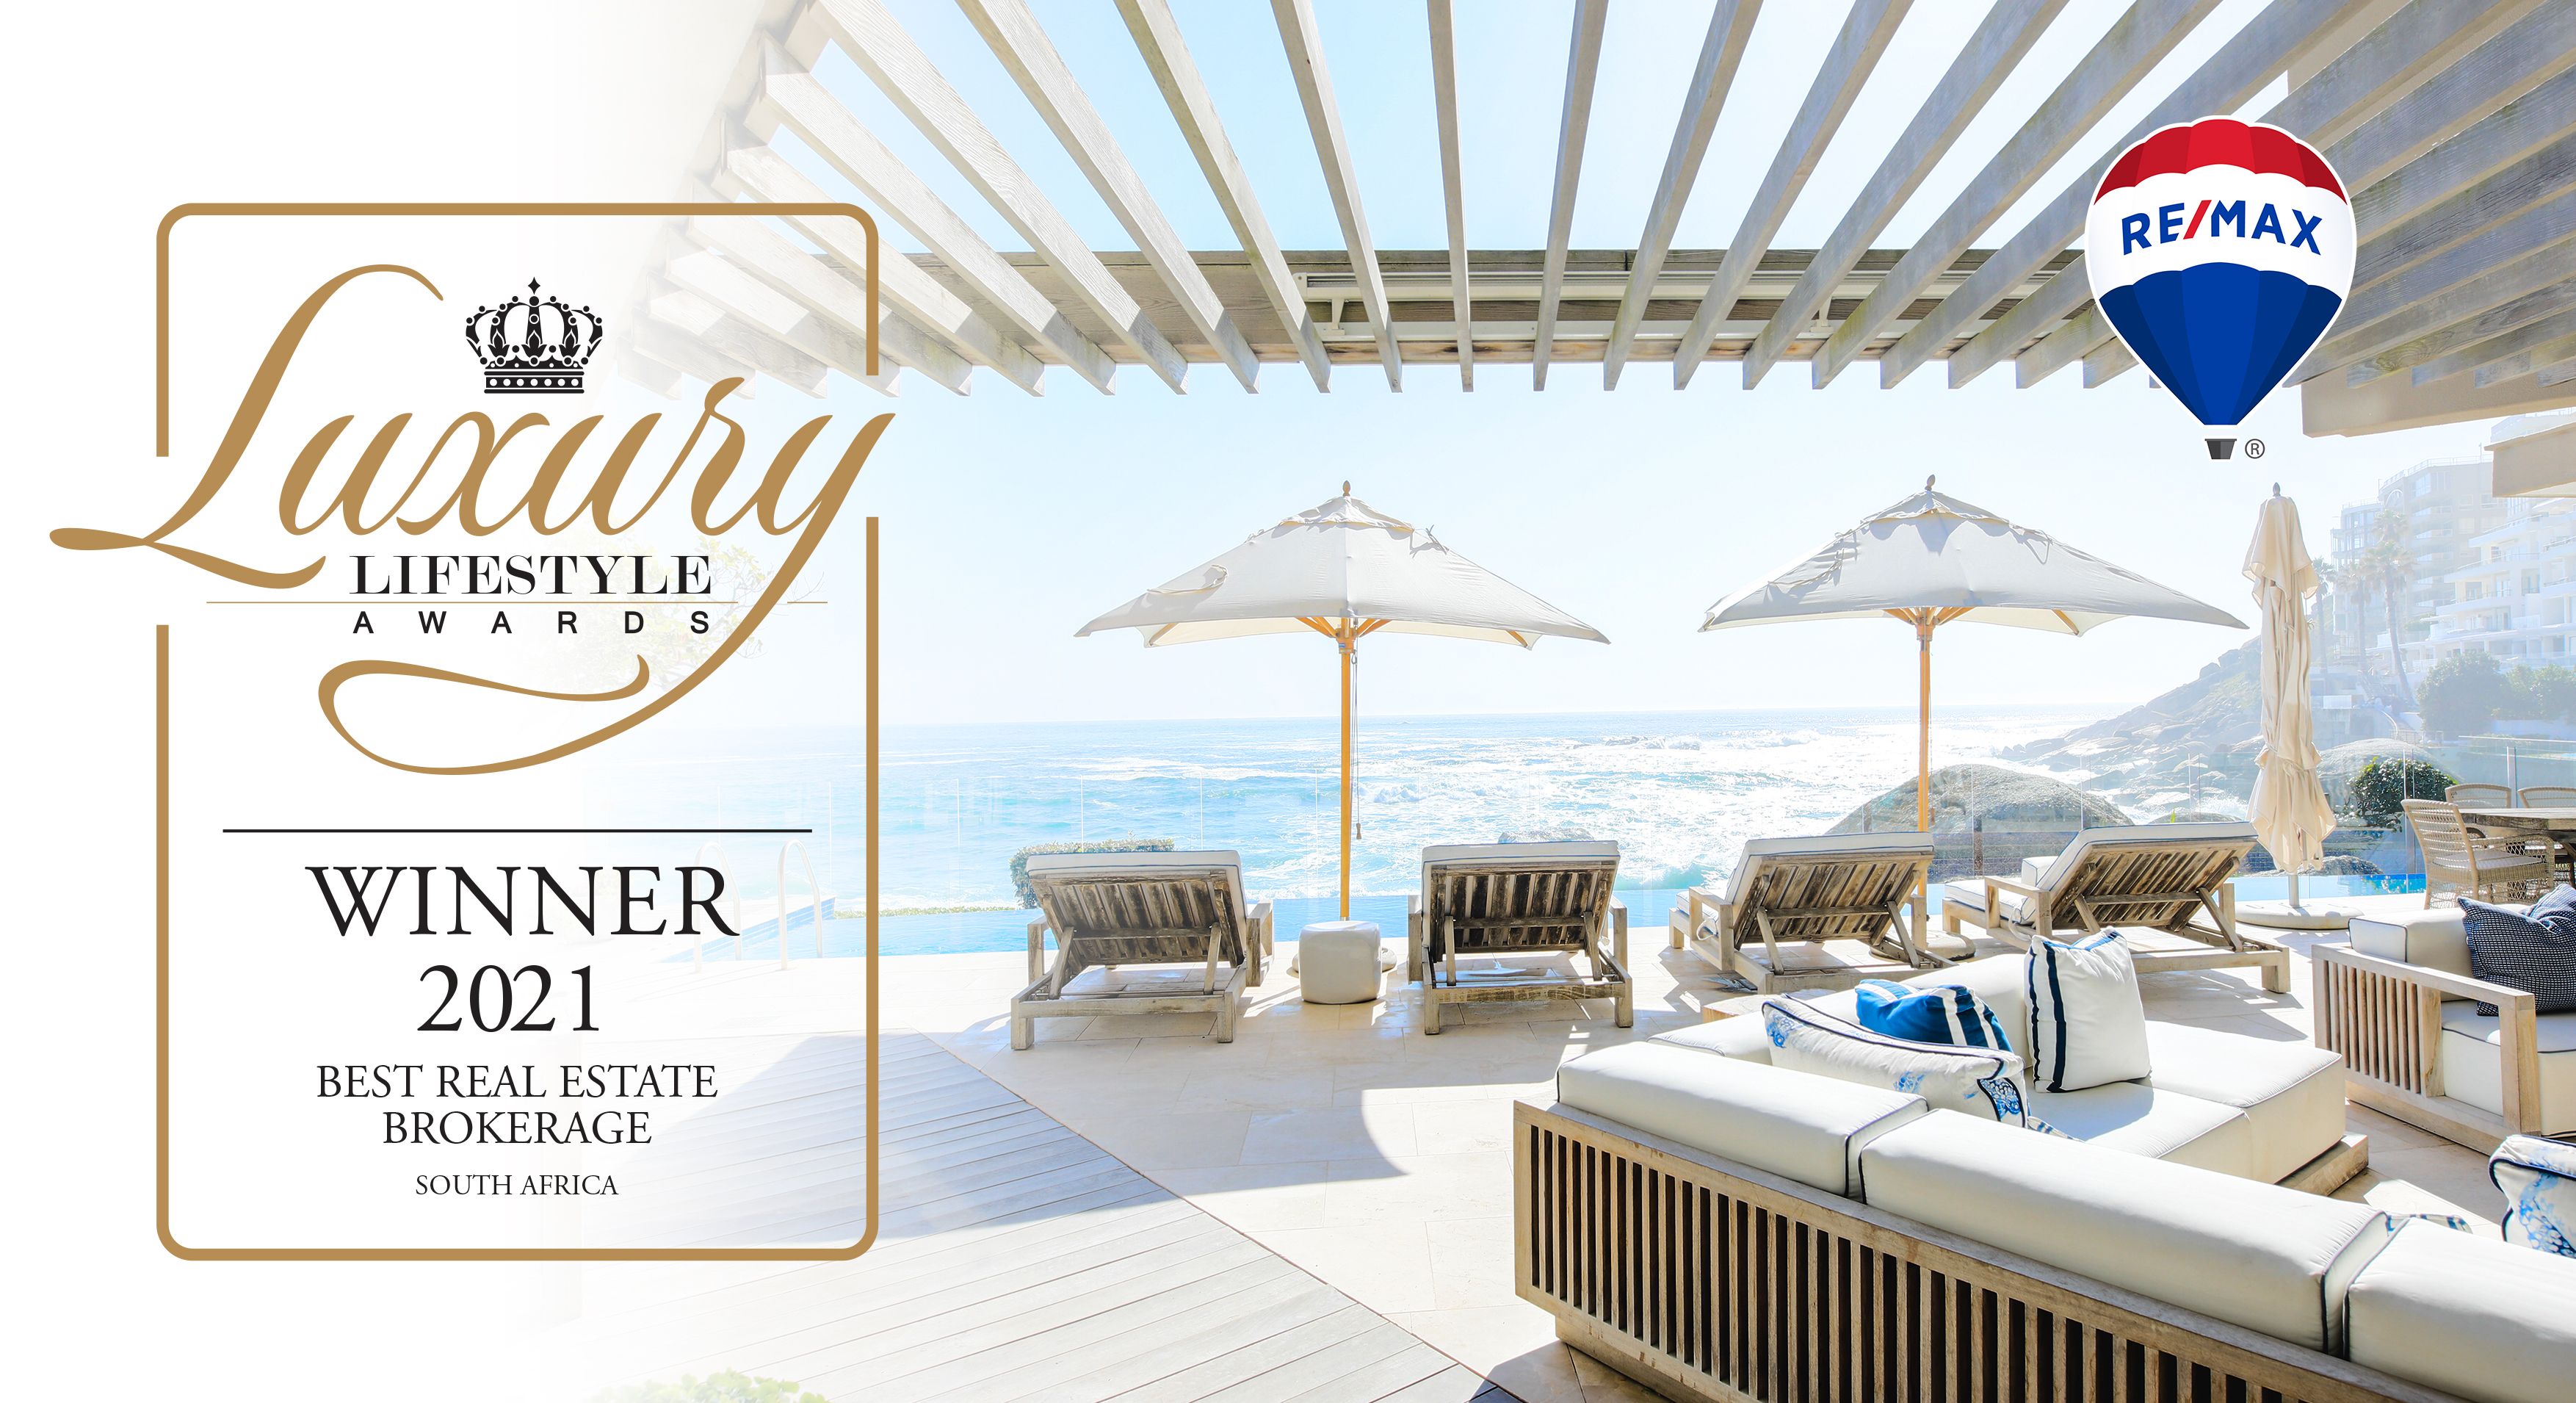 RE/MAX SA WINS GLOBAL LUXURY LIFESTYLE AWARD